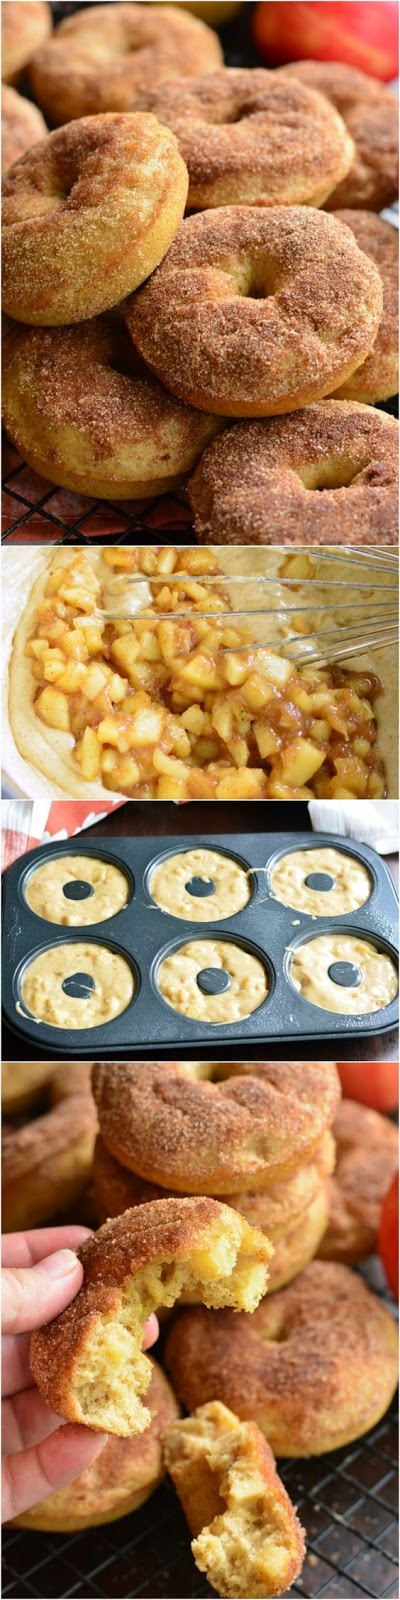 Apple Pie Baked Doughnuts